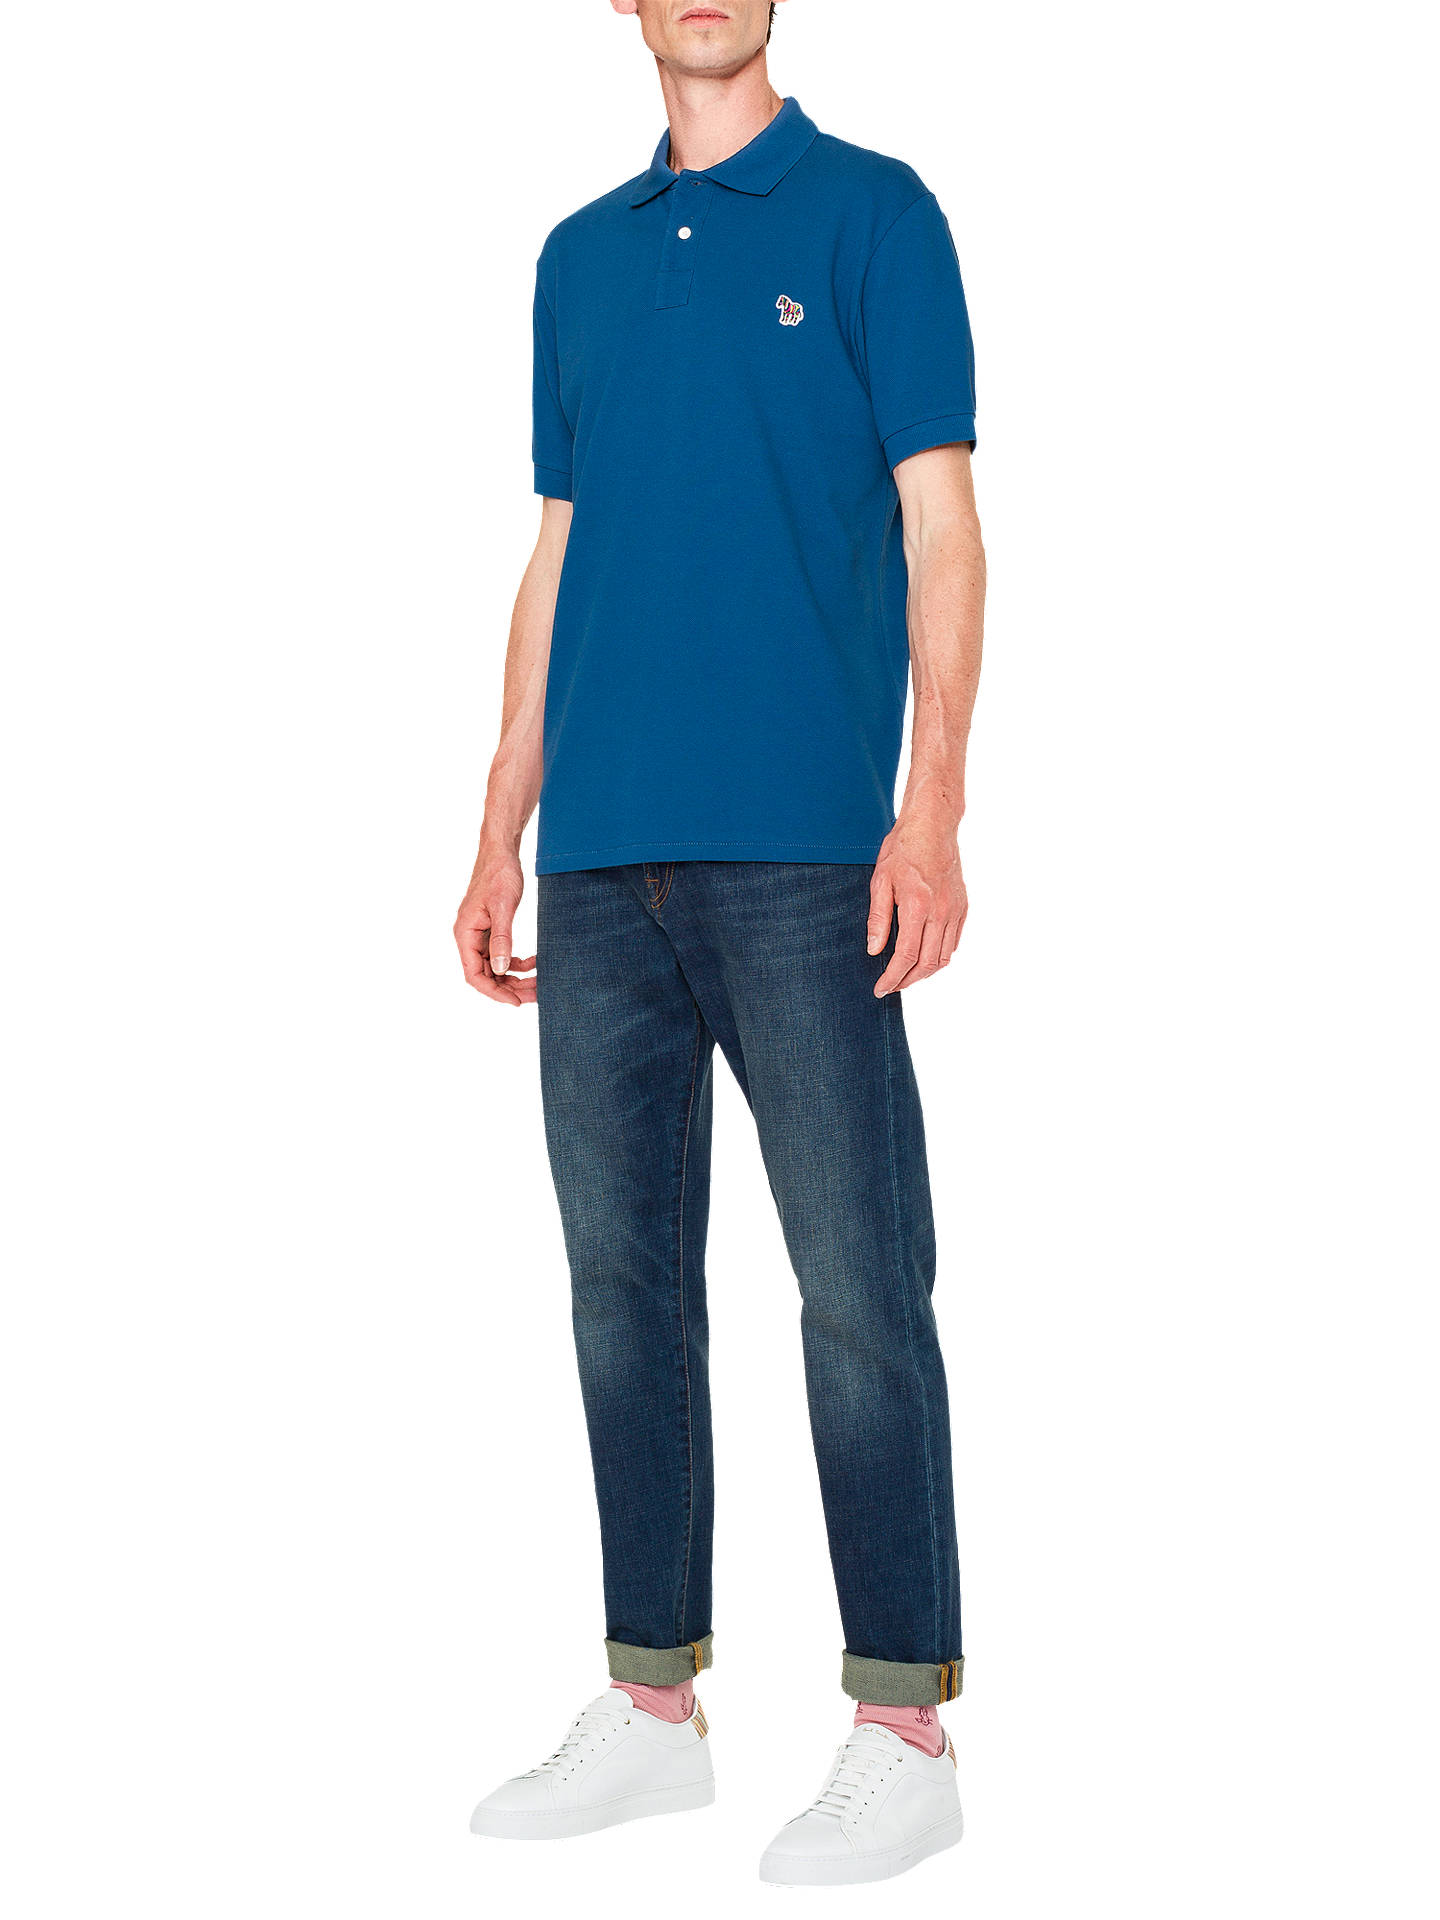 BuyPS Paul Smith Organic Cotton Pique Zebra Polo Shirt, Blue, L Online at johnlewis.com